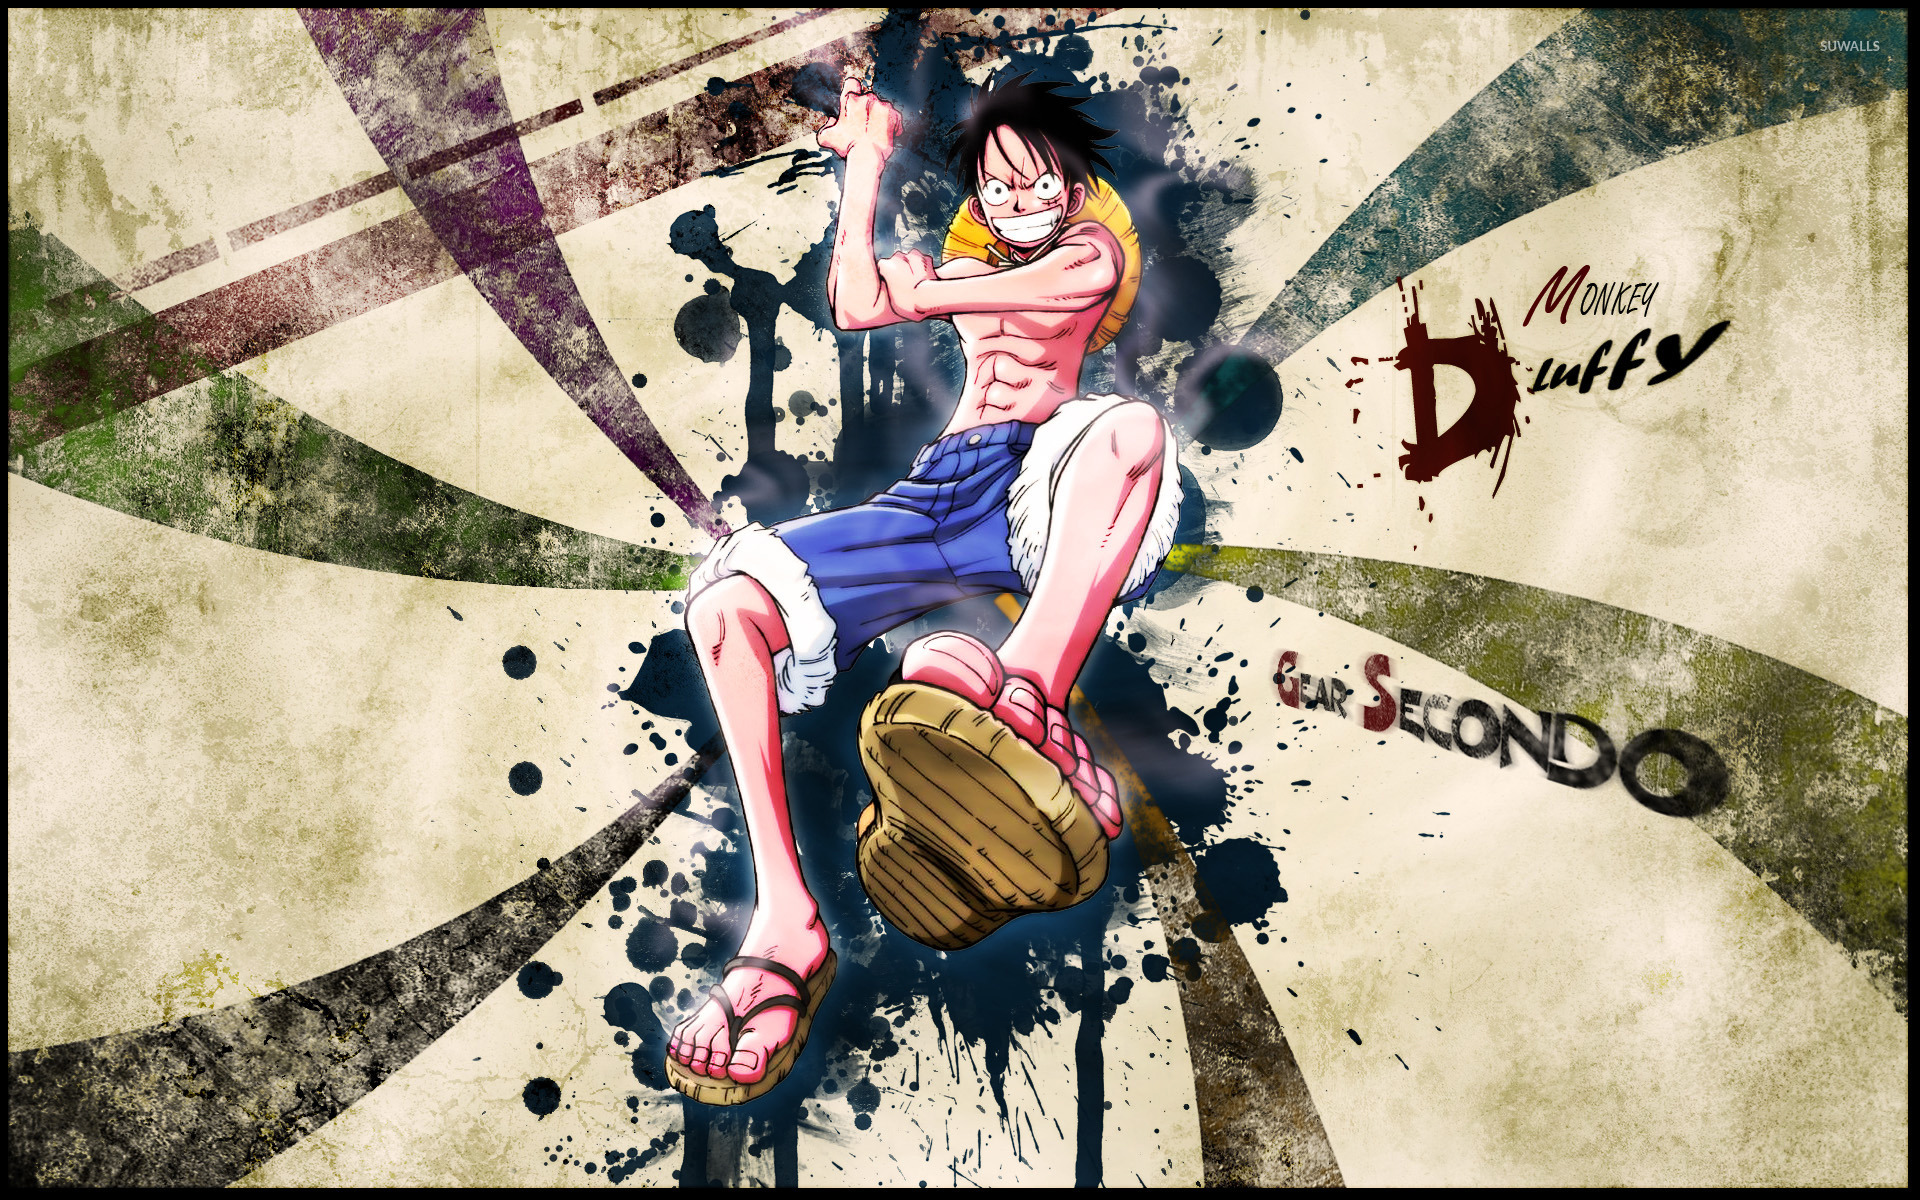 monkey d. luffy - one piece [3] wallpaper - anime wallpapers - #13995